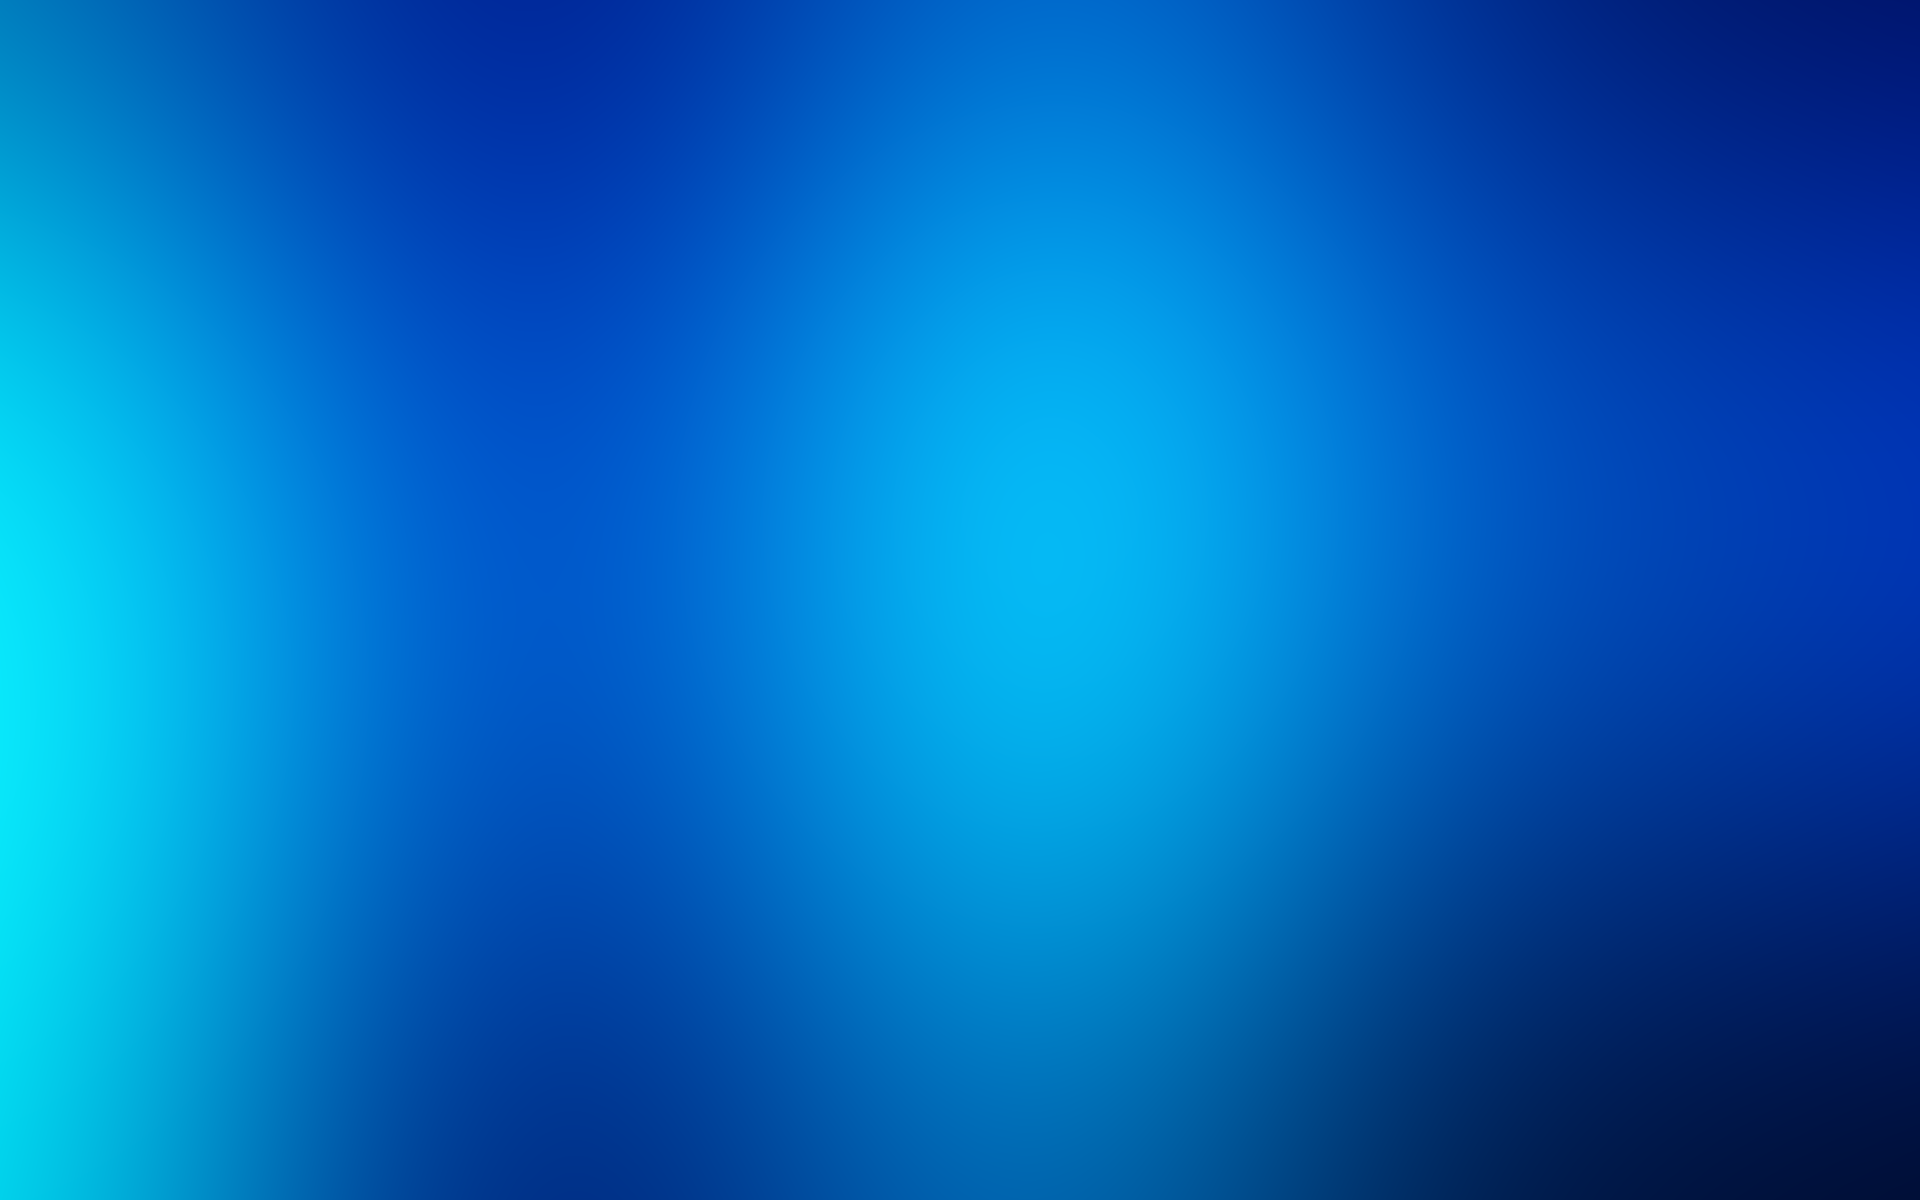 High Resolution Pictures Collection of Blue Background Wallpaper.